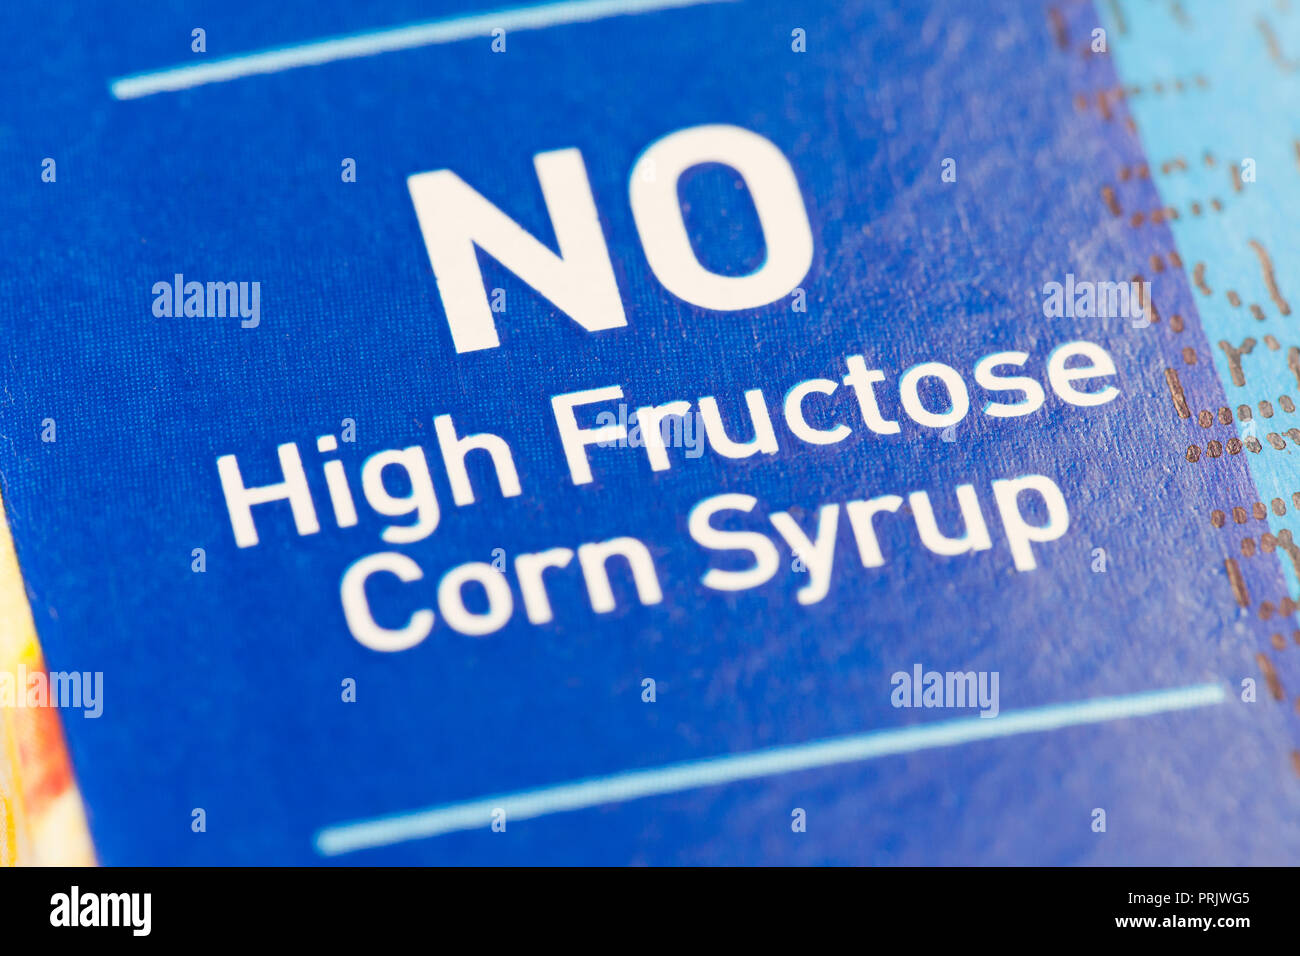 'No High Fructose Corn Syrup' claim on juice packaging - USA - Stock Image